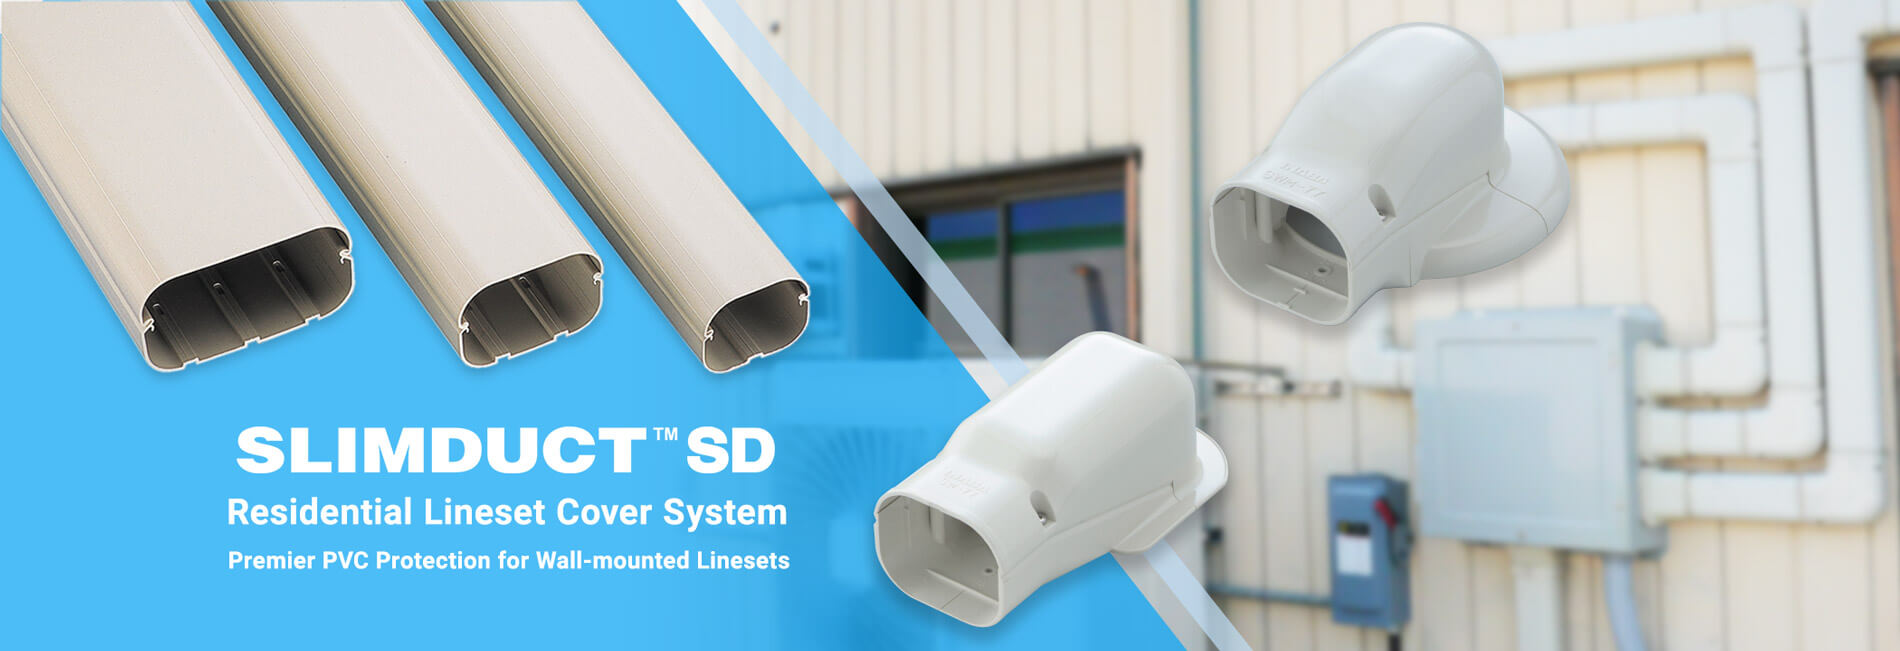 SLIMDUCT SD   Residential Lineset Cover System   Premier PVC Protection for Wall-mounted Linesets